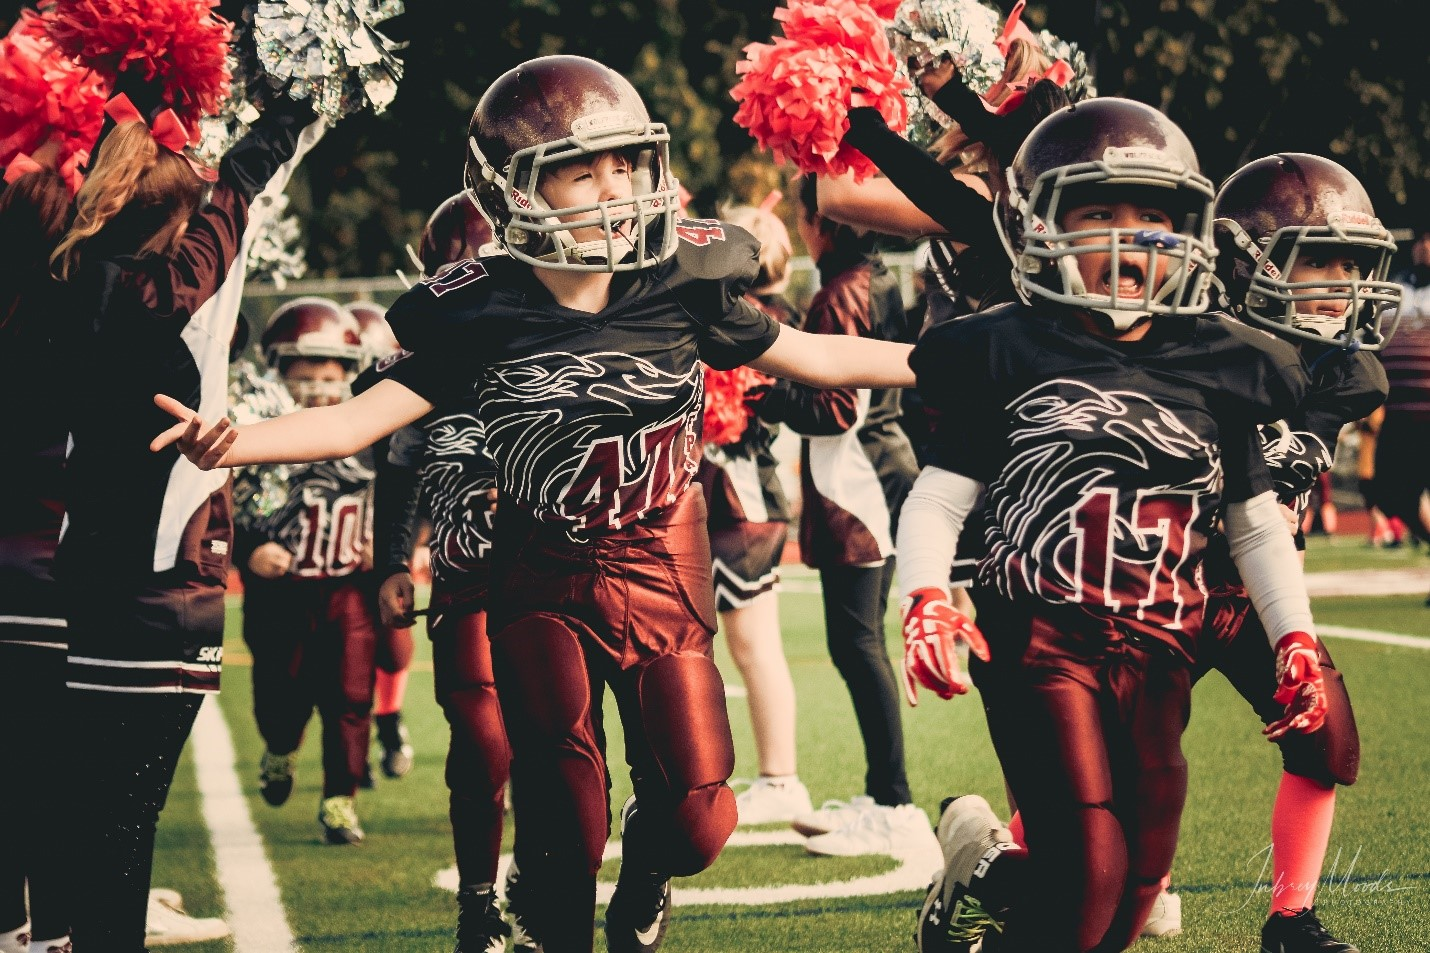 Youth sports childrens football team wearing black and red jerseys